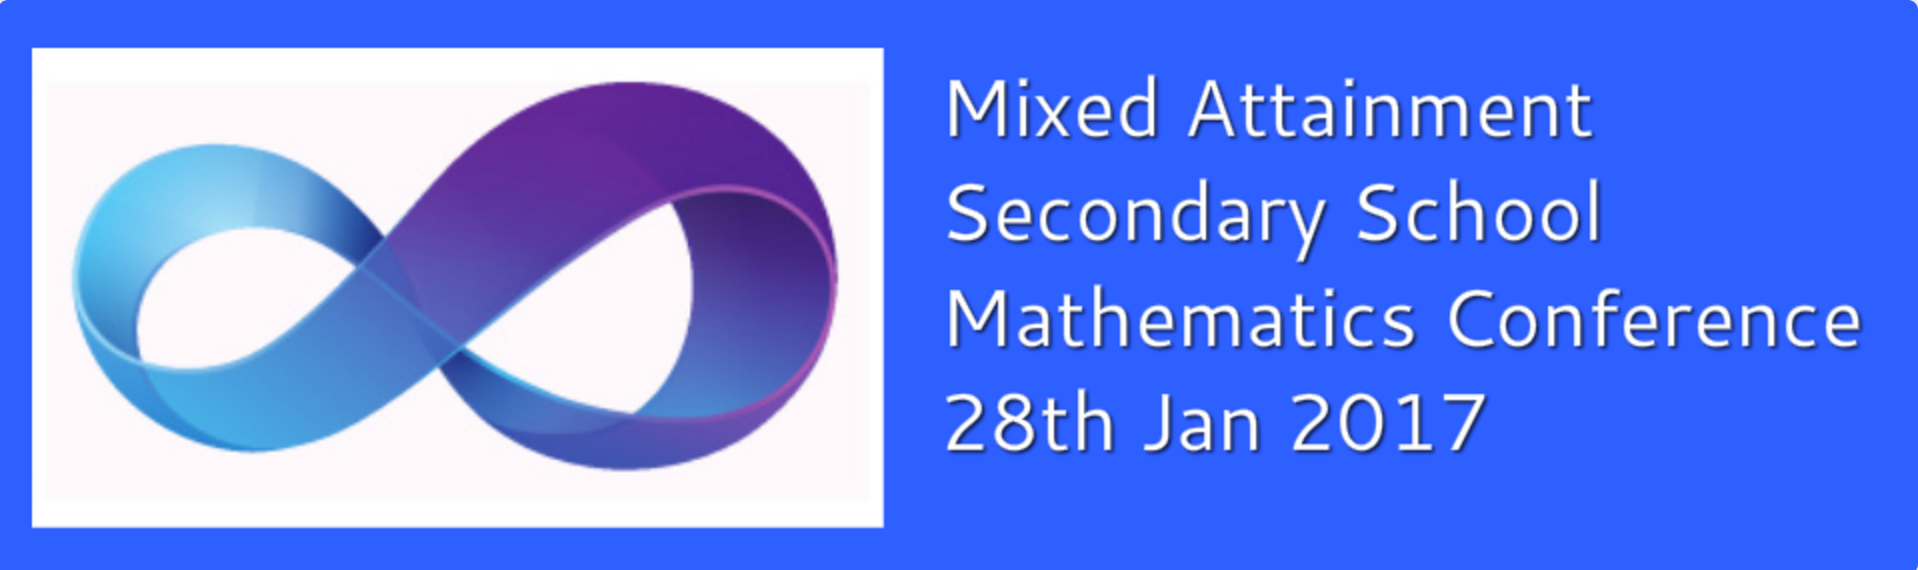 conference_28th_jan_2017_-_mixed_attainment_maths